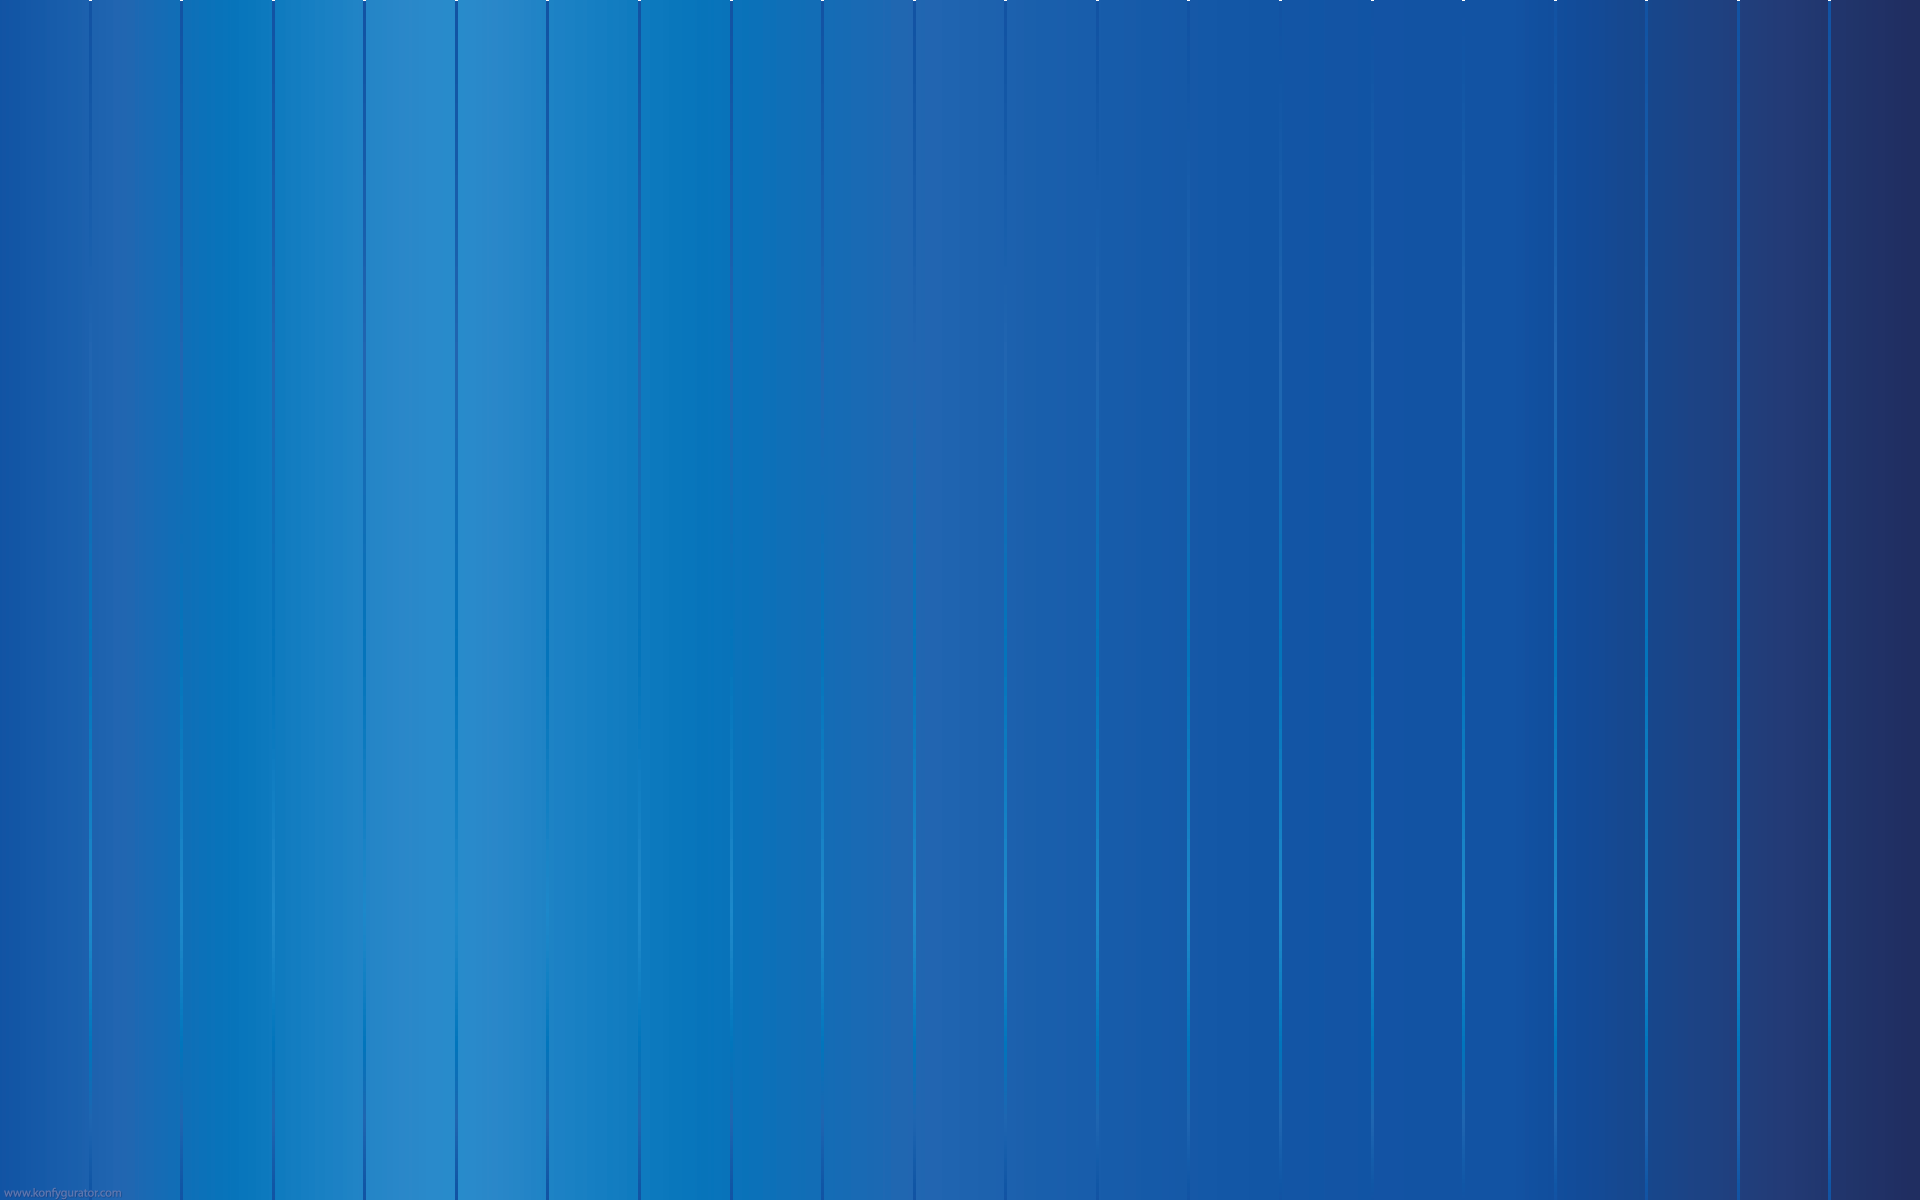 HD Wallpapers - 3D & Abstract - vertical, lines, blue